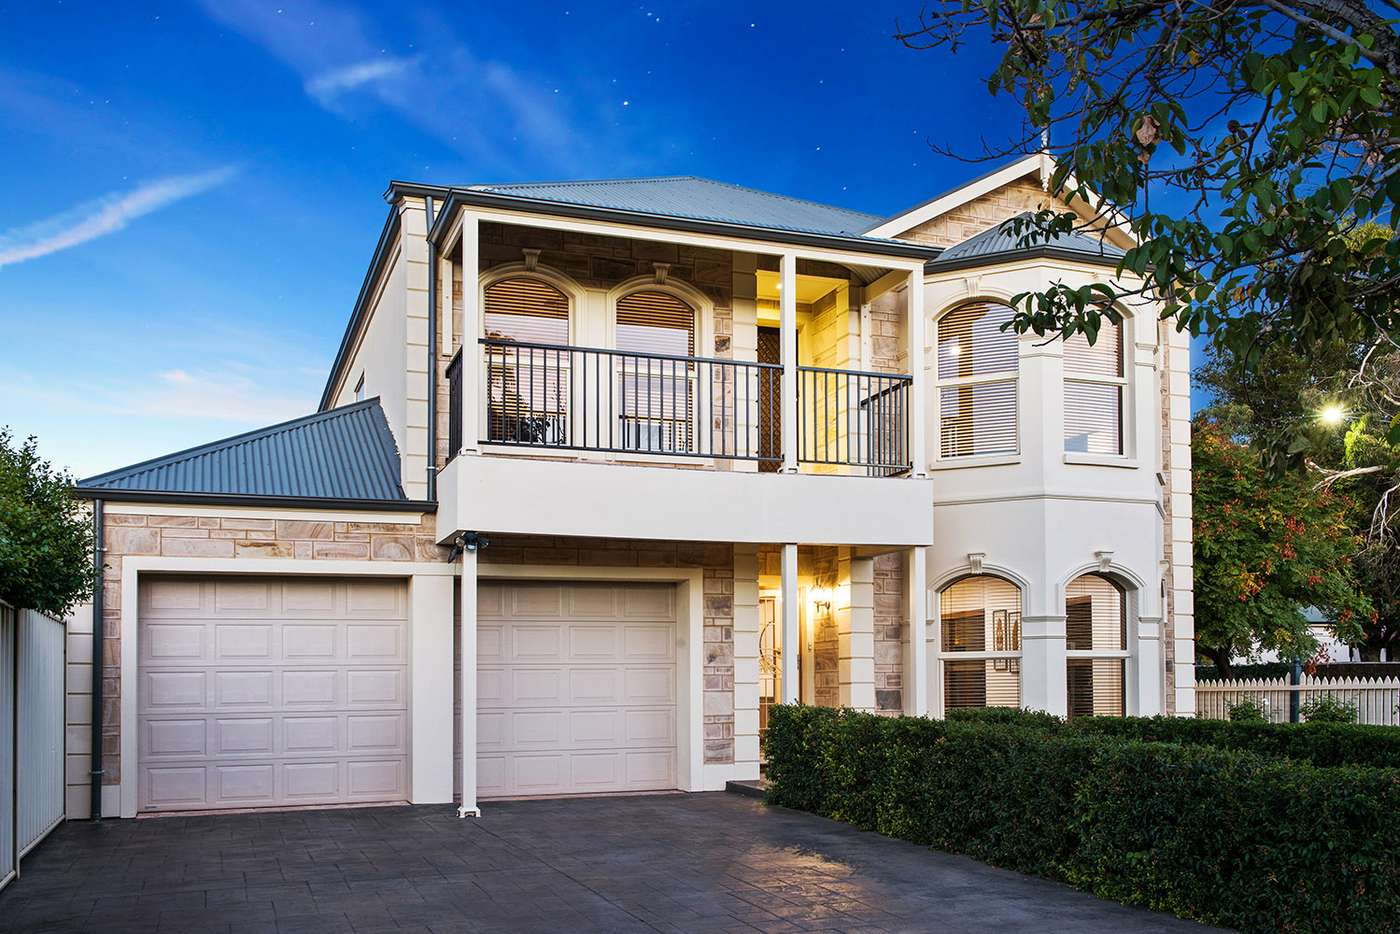 Main view of Homely house listing, 8 Alexander St, Evandale SA 5069